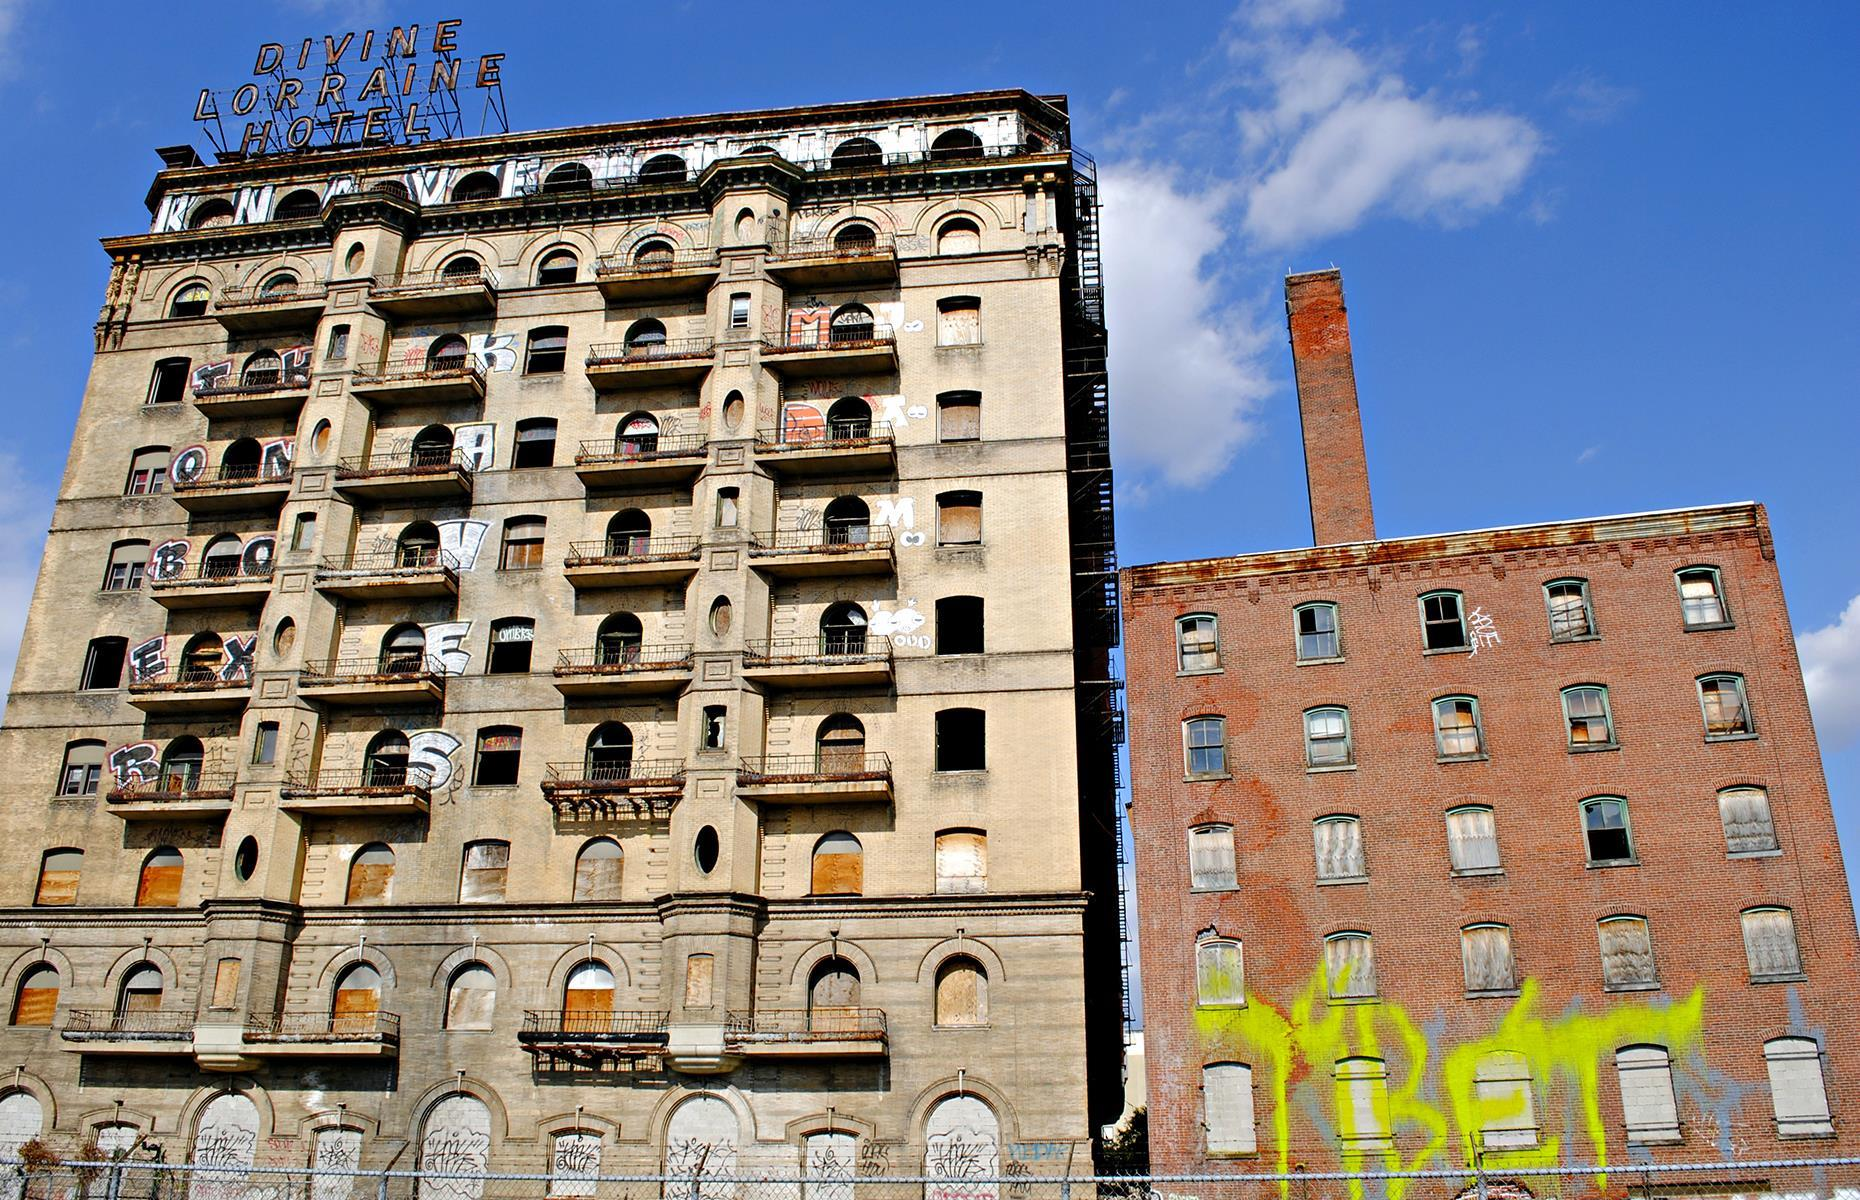 Slide 36 of 70: One of the first high-rise buildings in the city, the Divine Lorraine first served as a luxury apartment complex before it reopened as a hotel in 1900. In 1948 the hotel was bought by spiritual leader Reverend M. J. Divine (or Father Divine, as he was also known), who turned the hotel into the first fully racially integrated hotel in the USA. It closed in 1999 and was reduced to a hollow shell, with no windows, doors or floors remaining. The building has recently been renovated and now houses 101 luxury apartments.